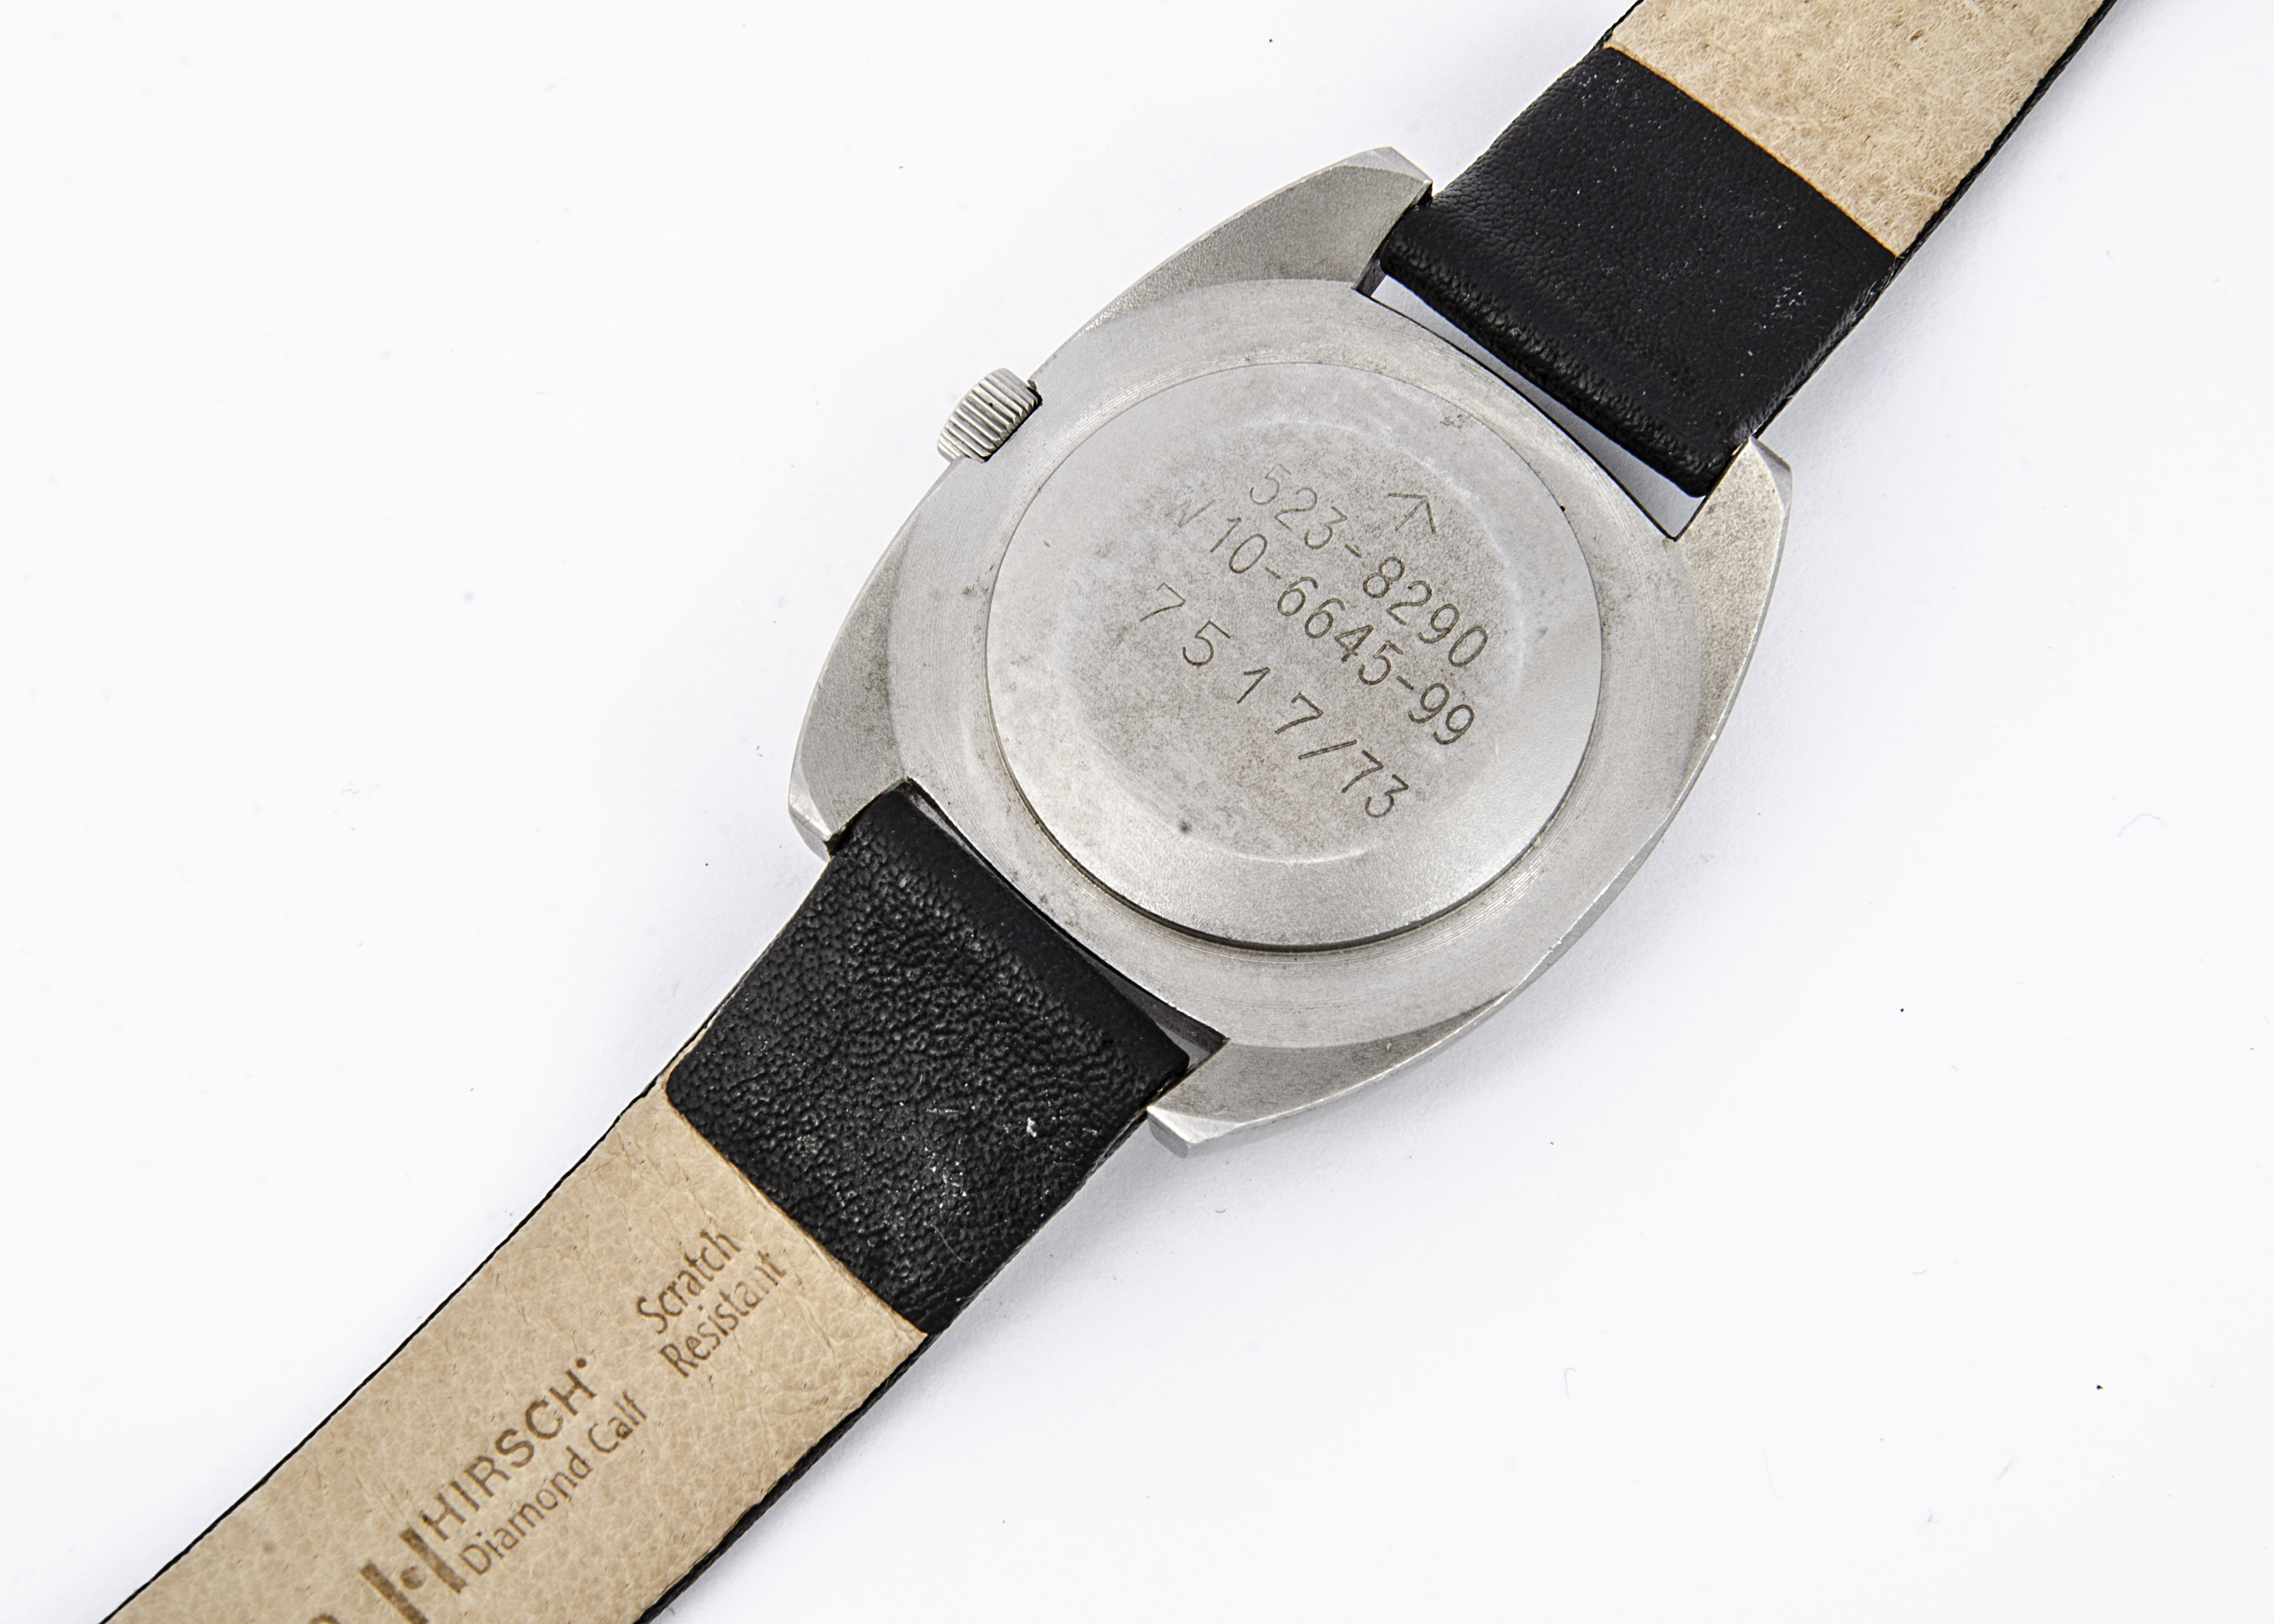 A 1970s Hamilton W-10 Military Army stainless steel wristwatch, 35mm tonneau case, running, black